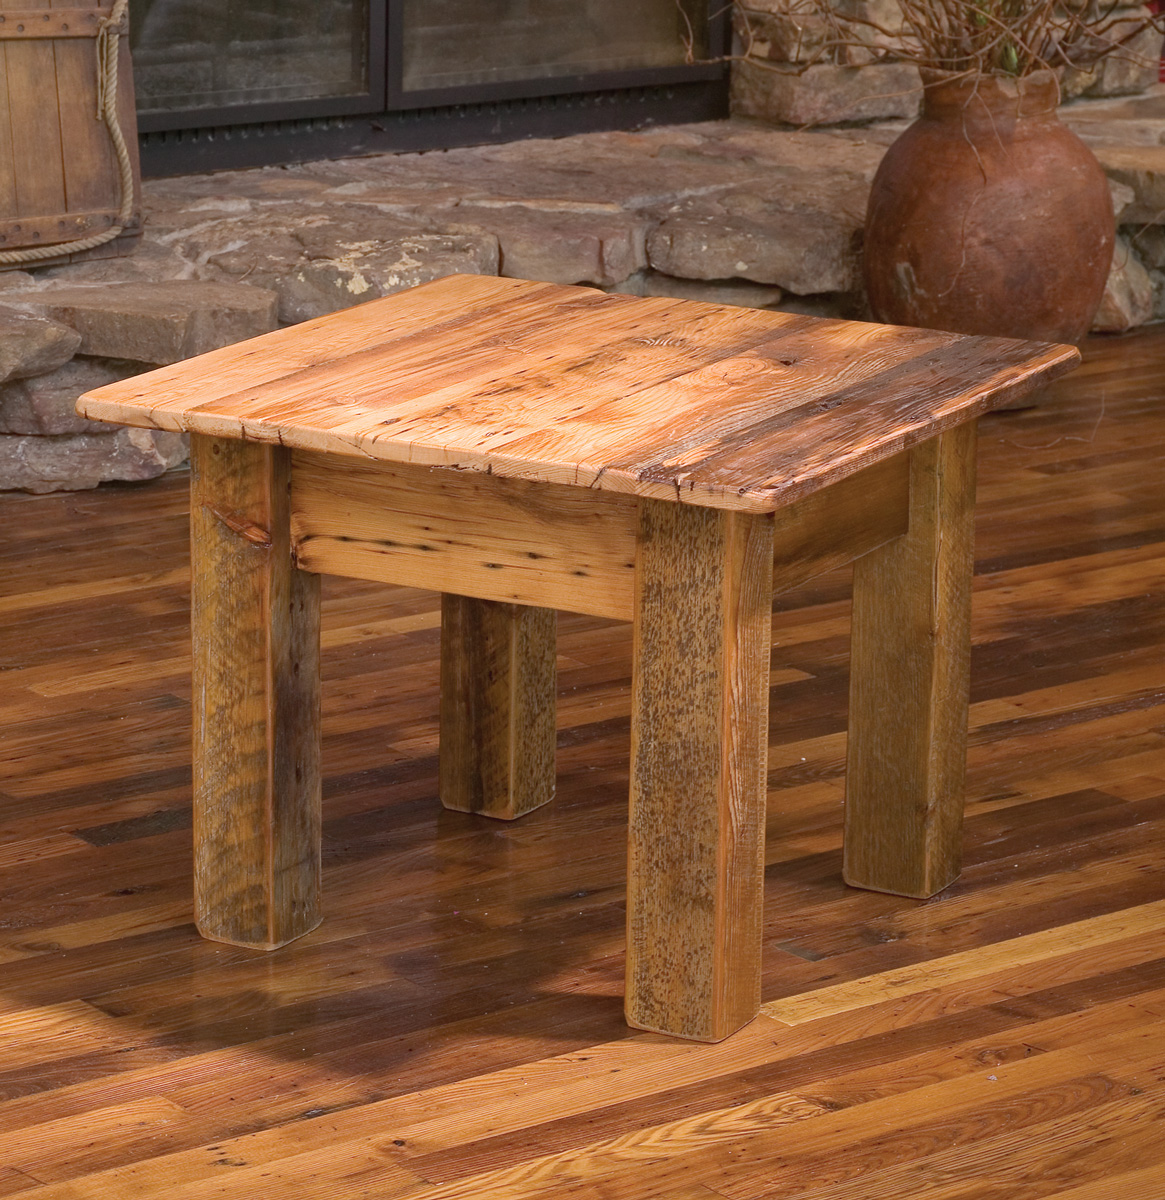 Diy plans barn wood end table plans pdf download balsa Reclaimed wood furniture portland oregon